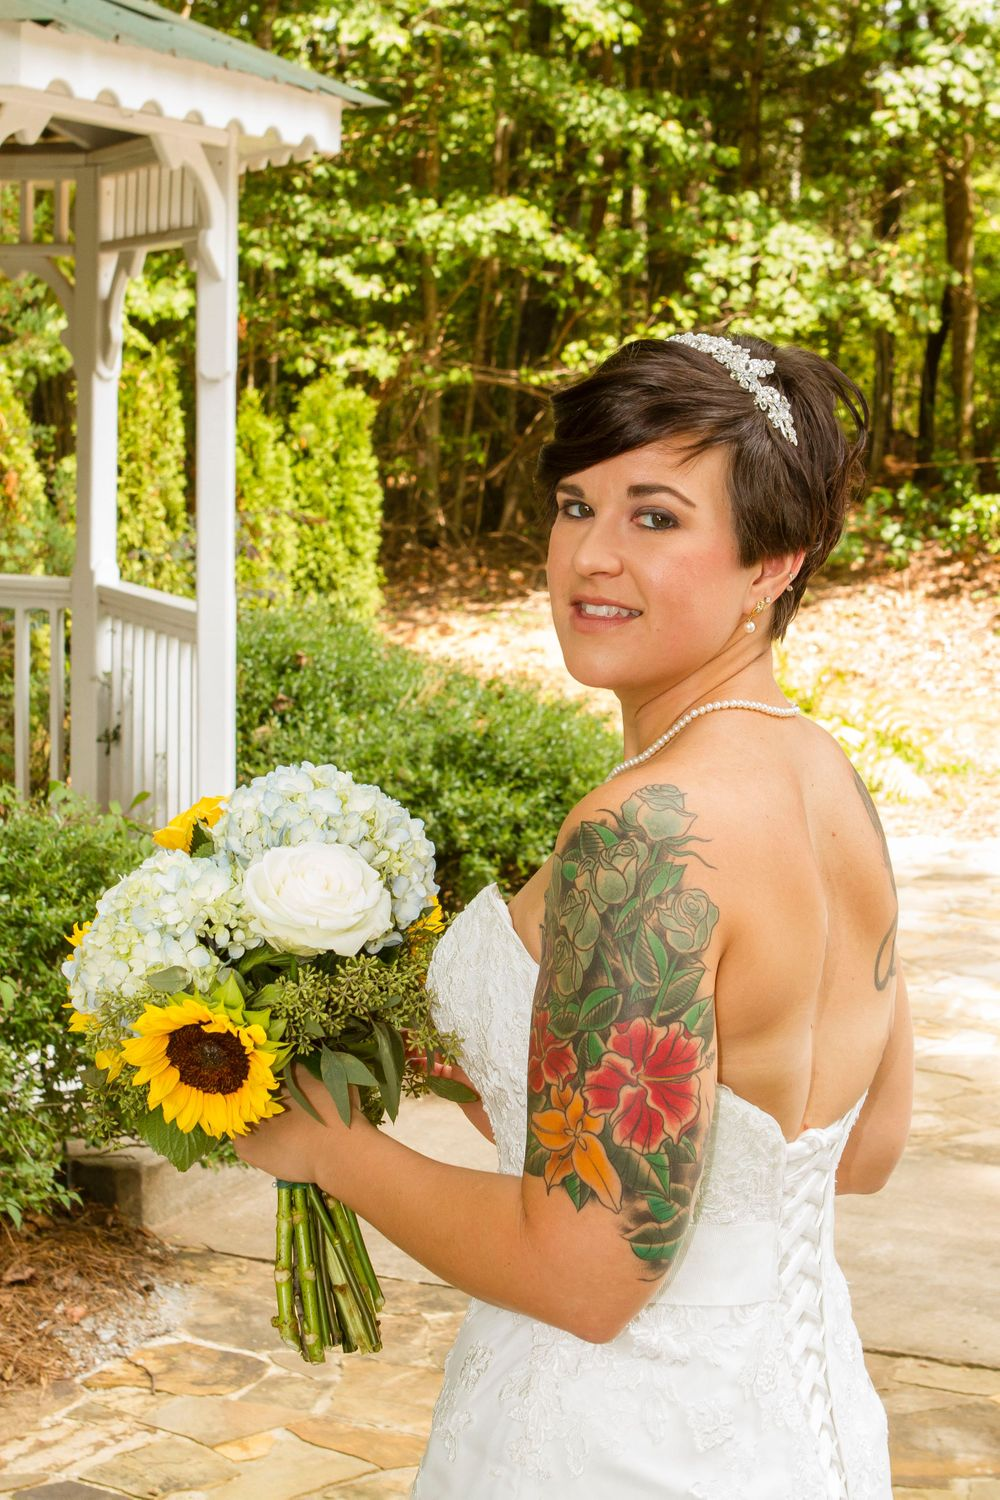 Outdoor tattooed bride with short hair looking over her shoulder while holding a bouquet of flowers.